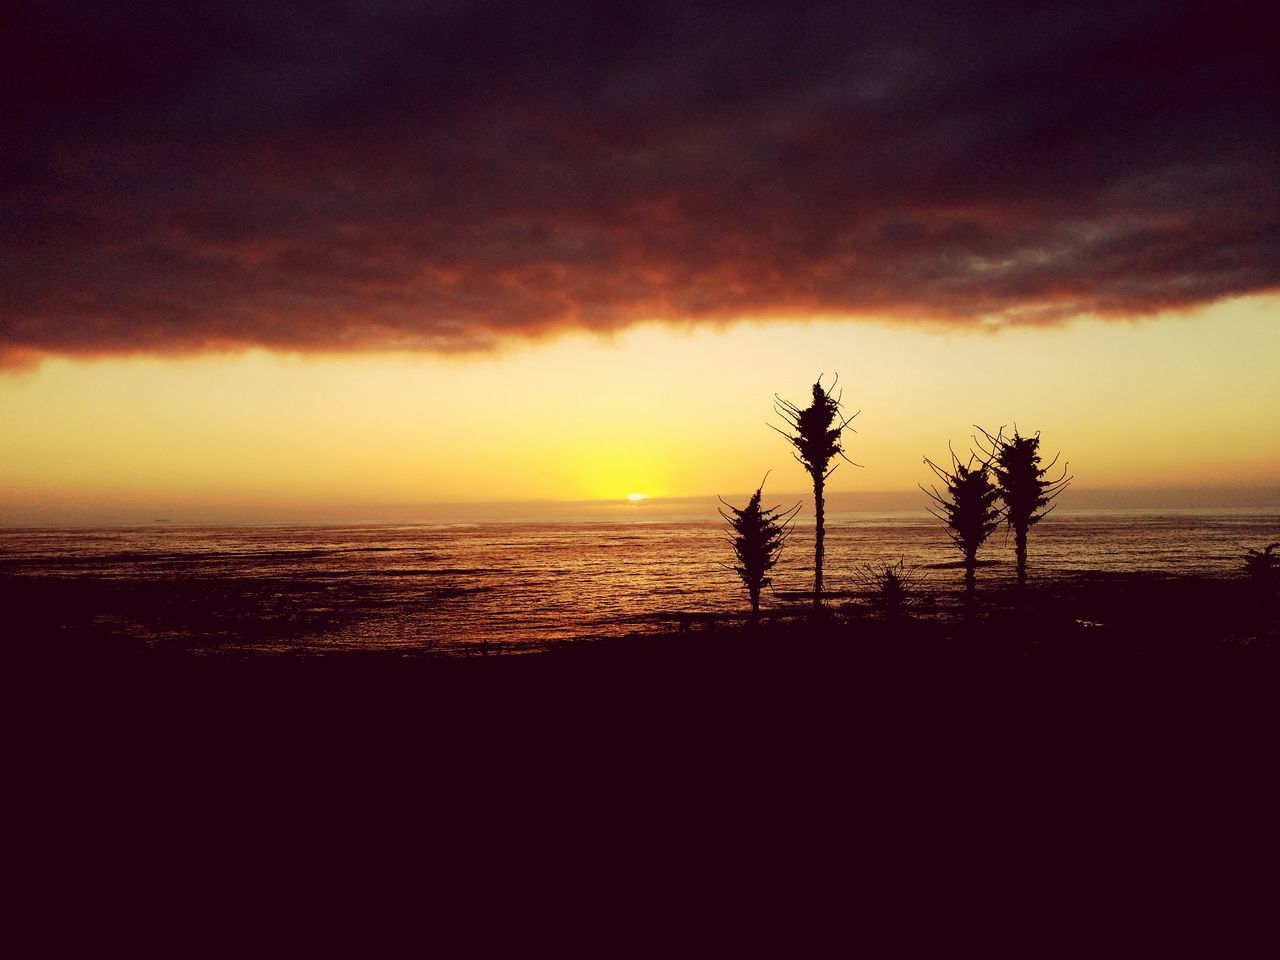 sunset, sea, beach, nature, beauty in nature, scenics, sky, silhouette, tranquil scene, tranquility, cloud - sky, no people, water, outdoors, horizon over water, tree, palm tree